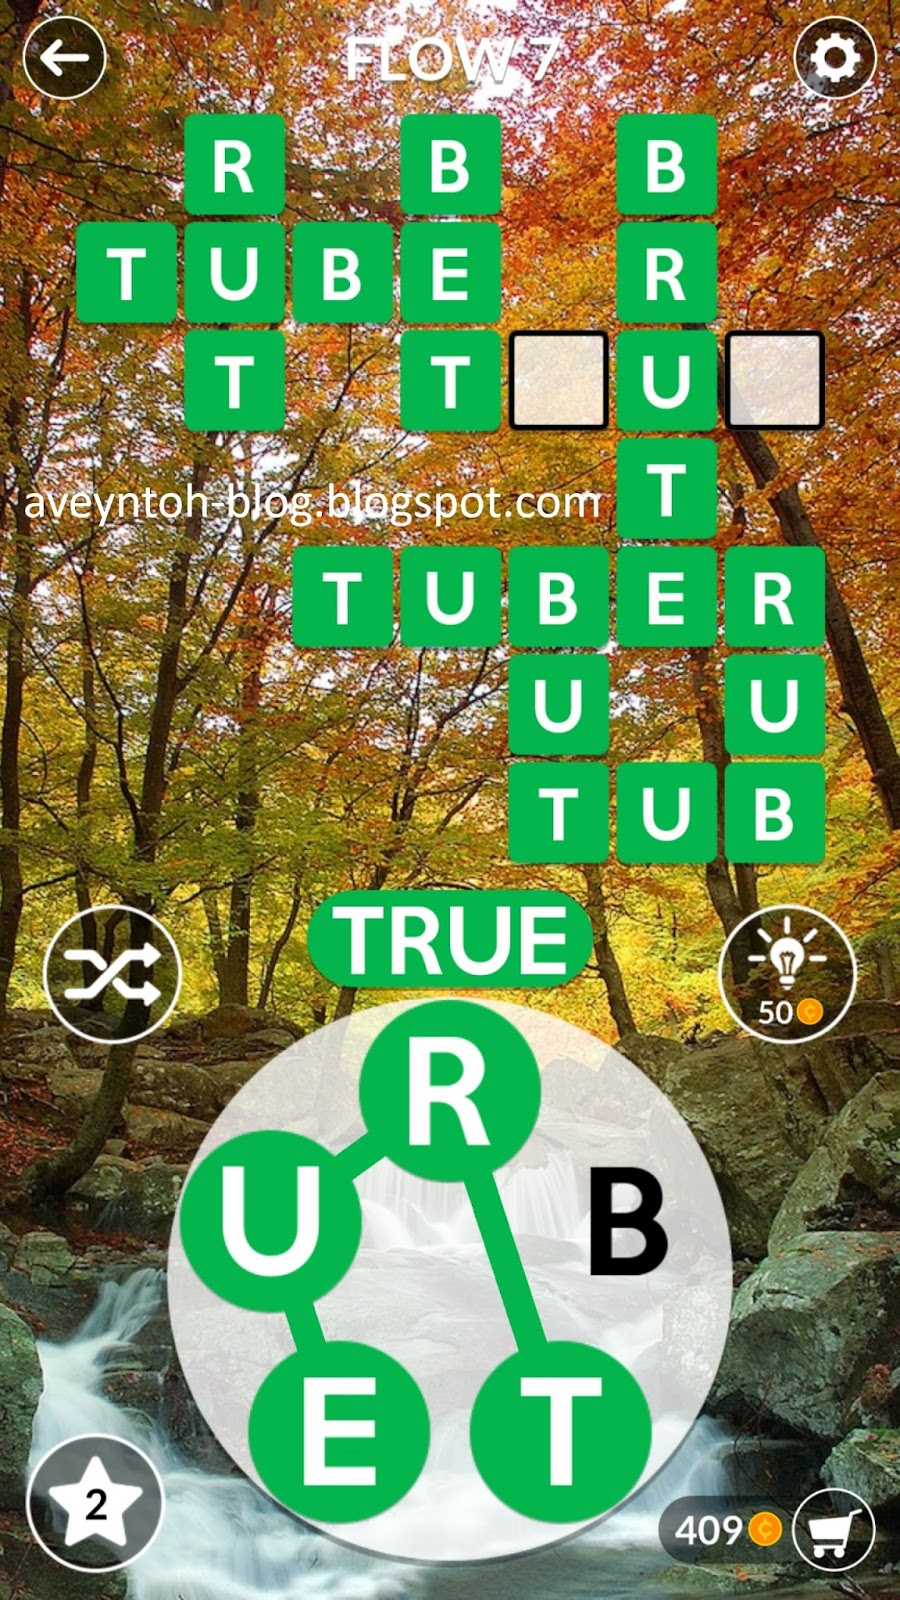 Aveyn S Blog Wordscapes Answers Forest Flow